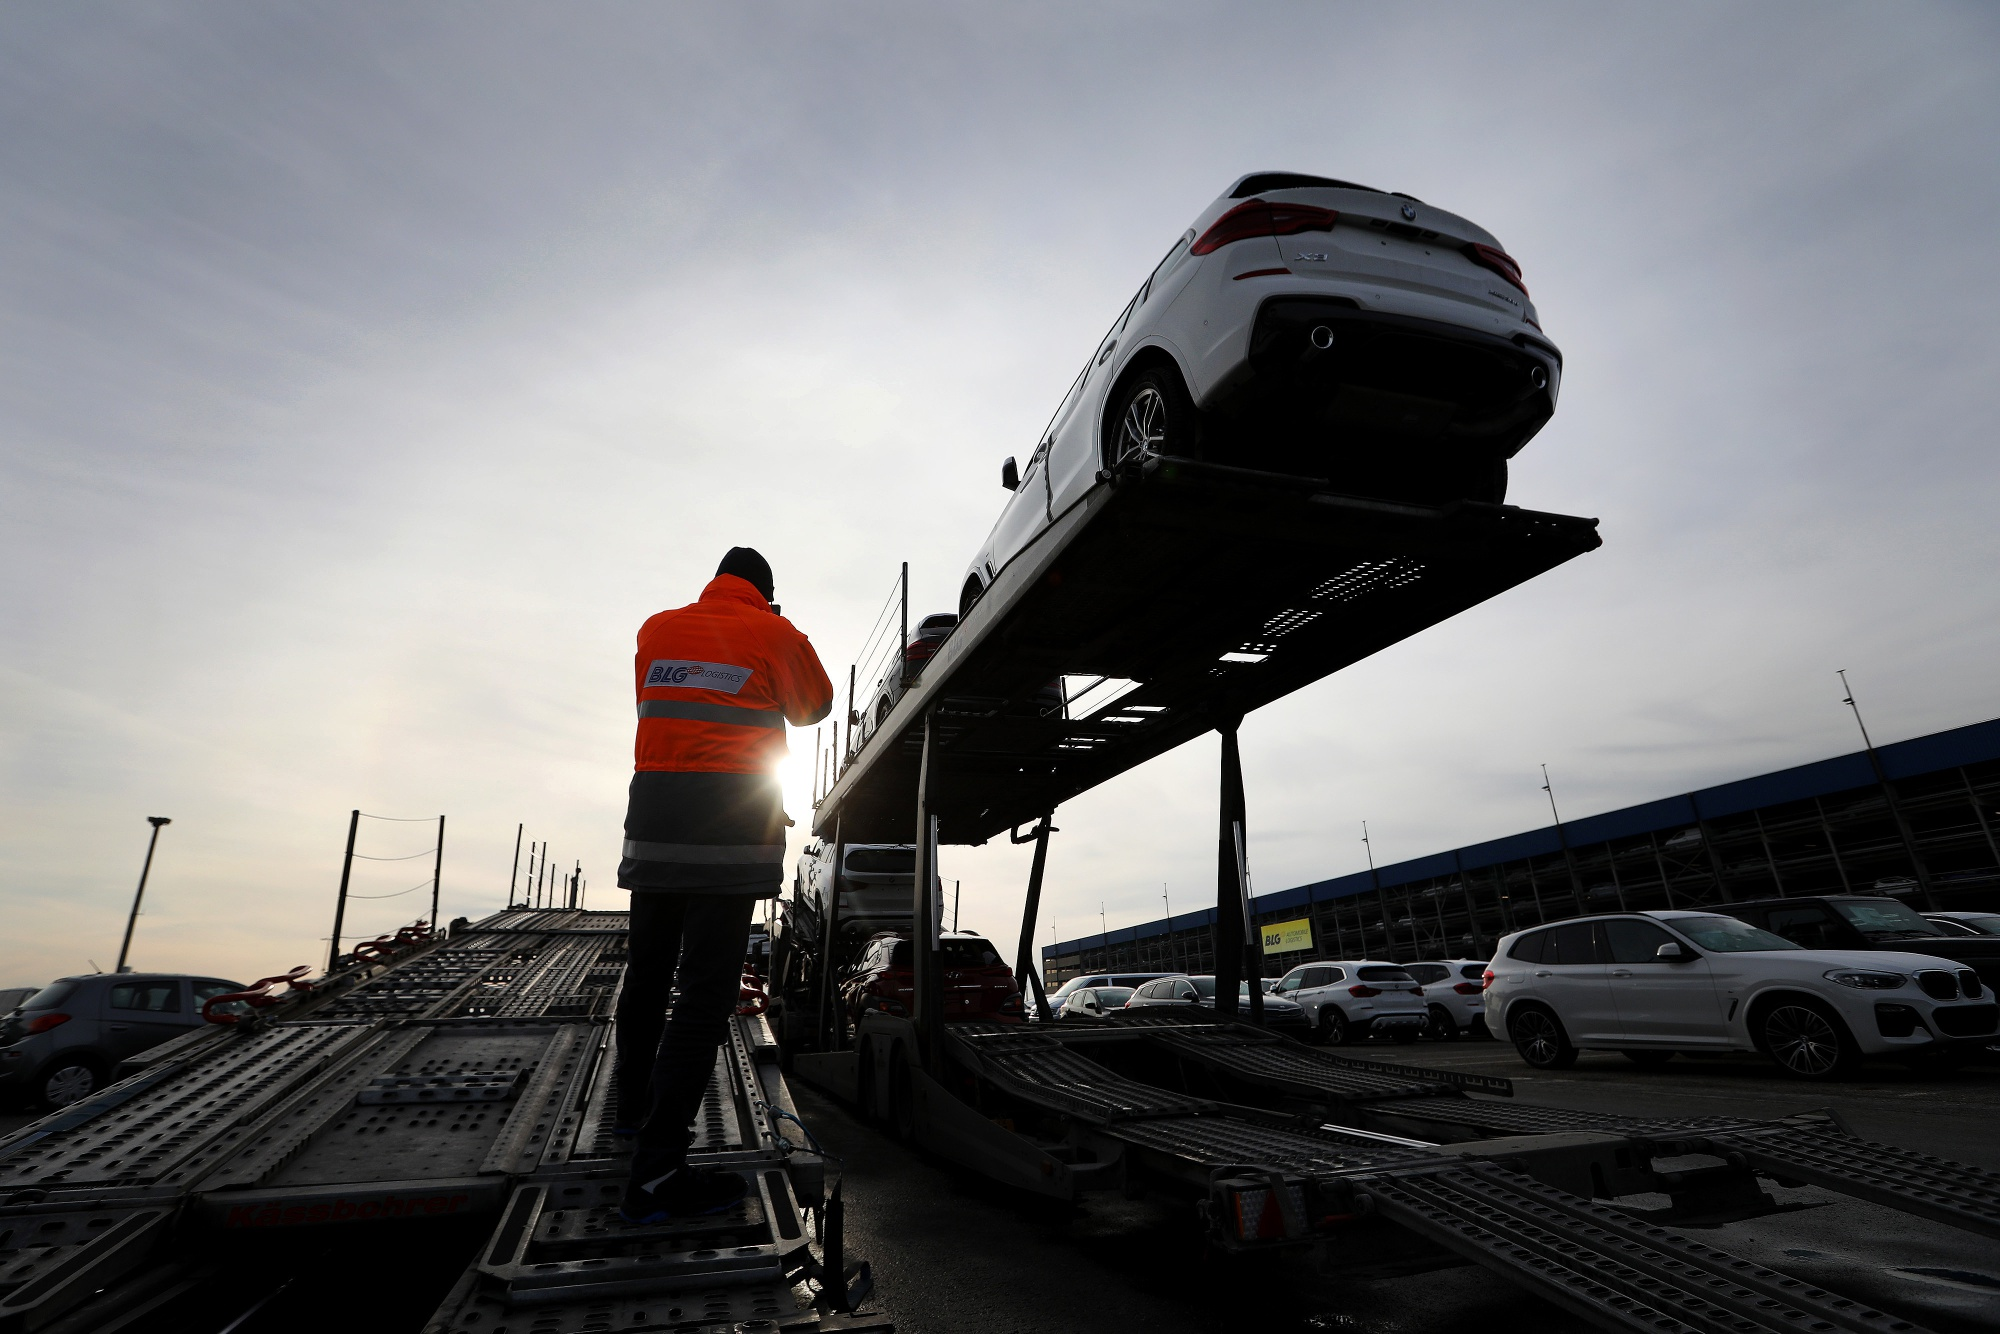 German Exports Slump Most in Three Years on Trade Conflicts - Bloomberg